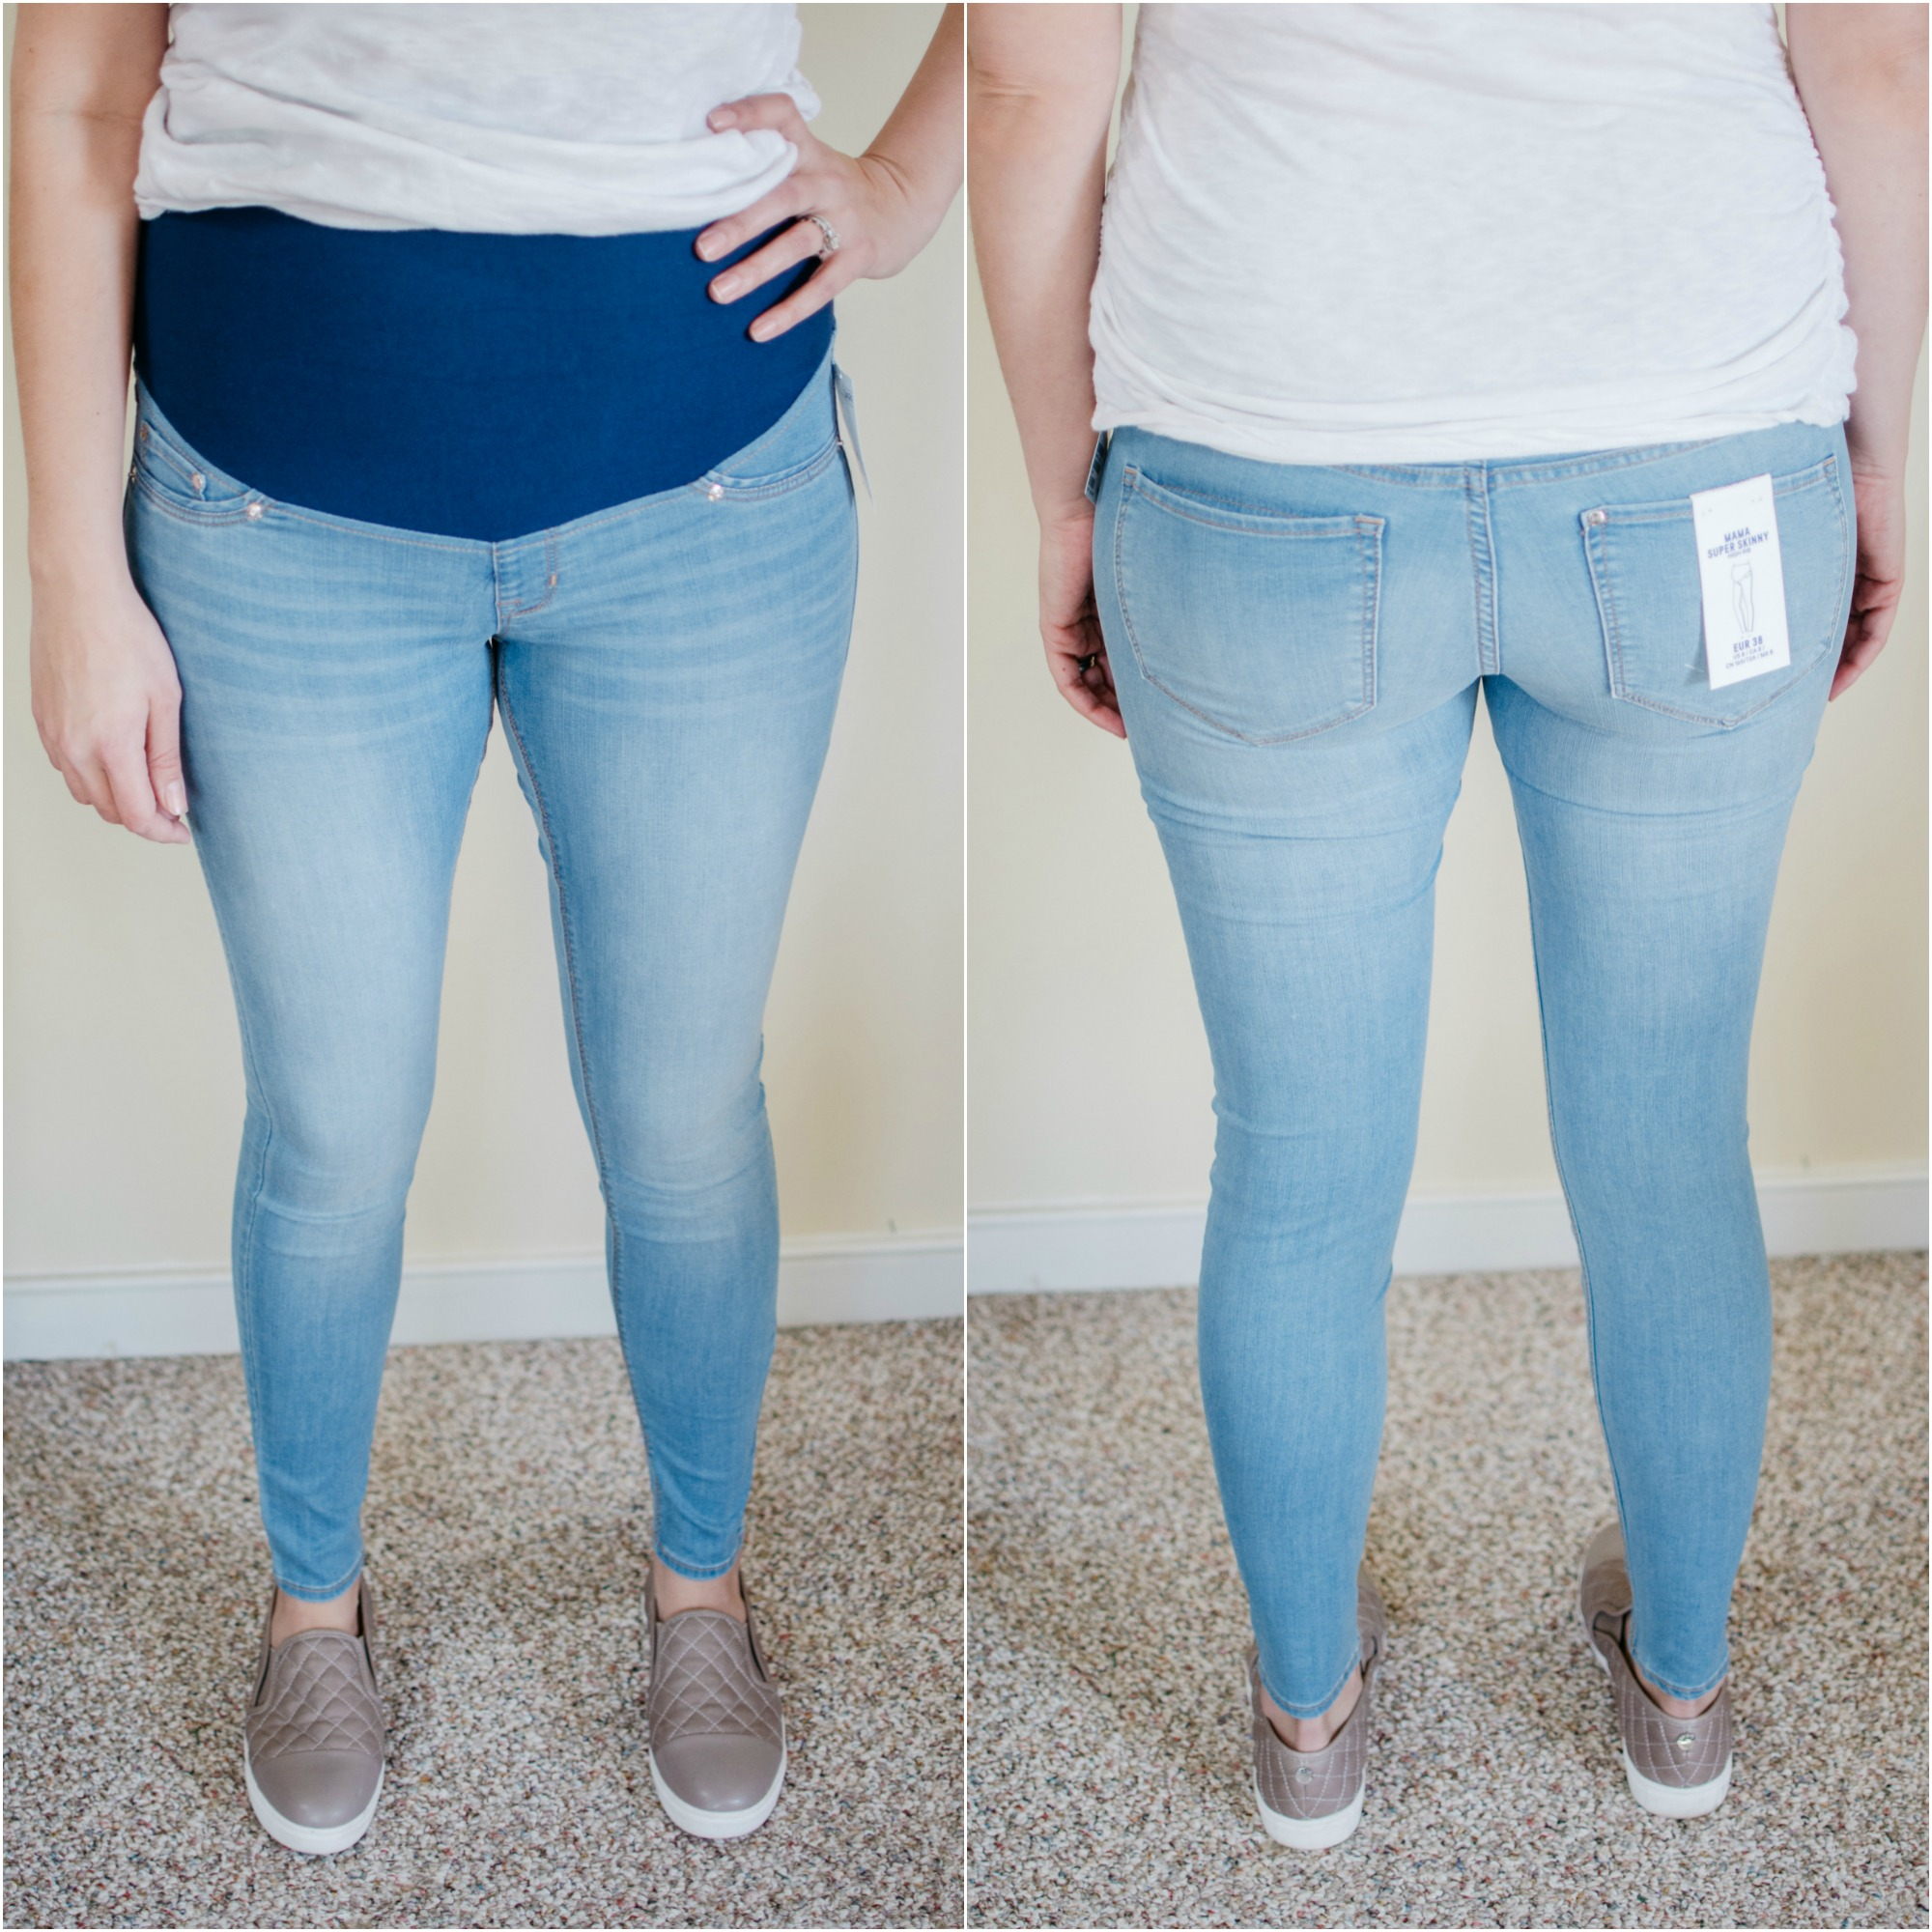 H&M Mama Super Skinny Jeans Review - H&M Maternity Jeans | See reviews of over 15 maternity jeans brands by clicking through to this post! | bylaurenm.com